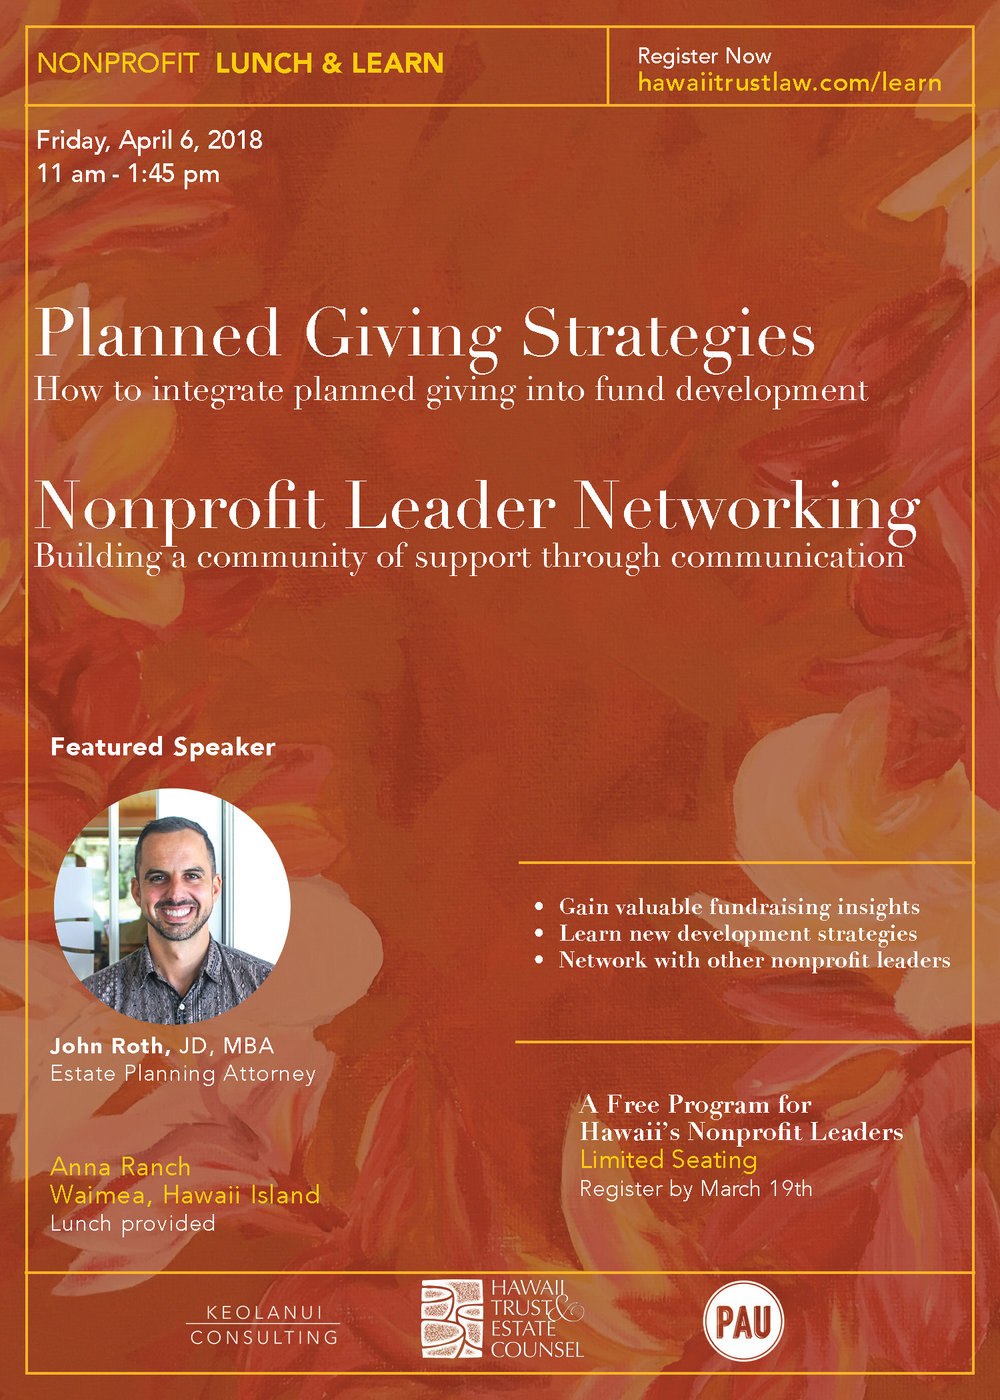 Print_Nonprofit Lunch & Learn_5x7_Invitation_4.7.17_FINAL.jpg